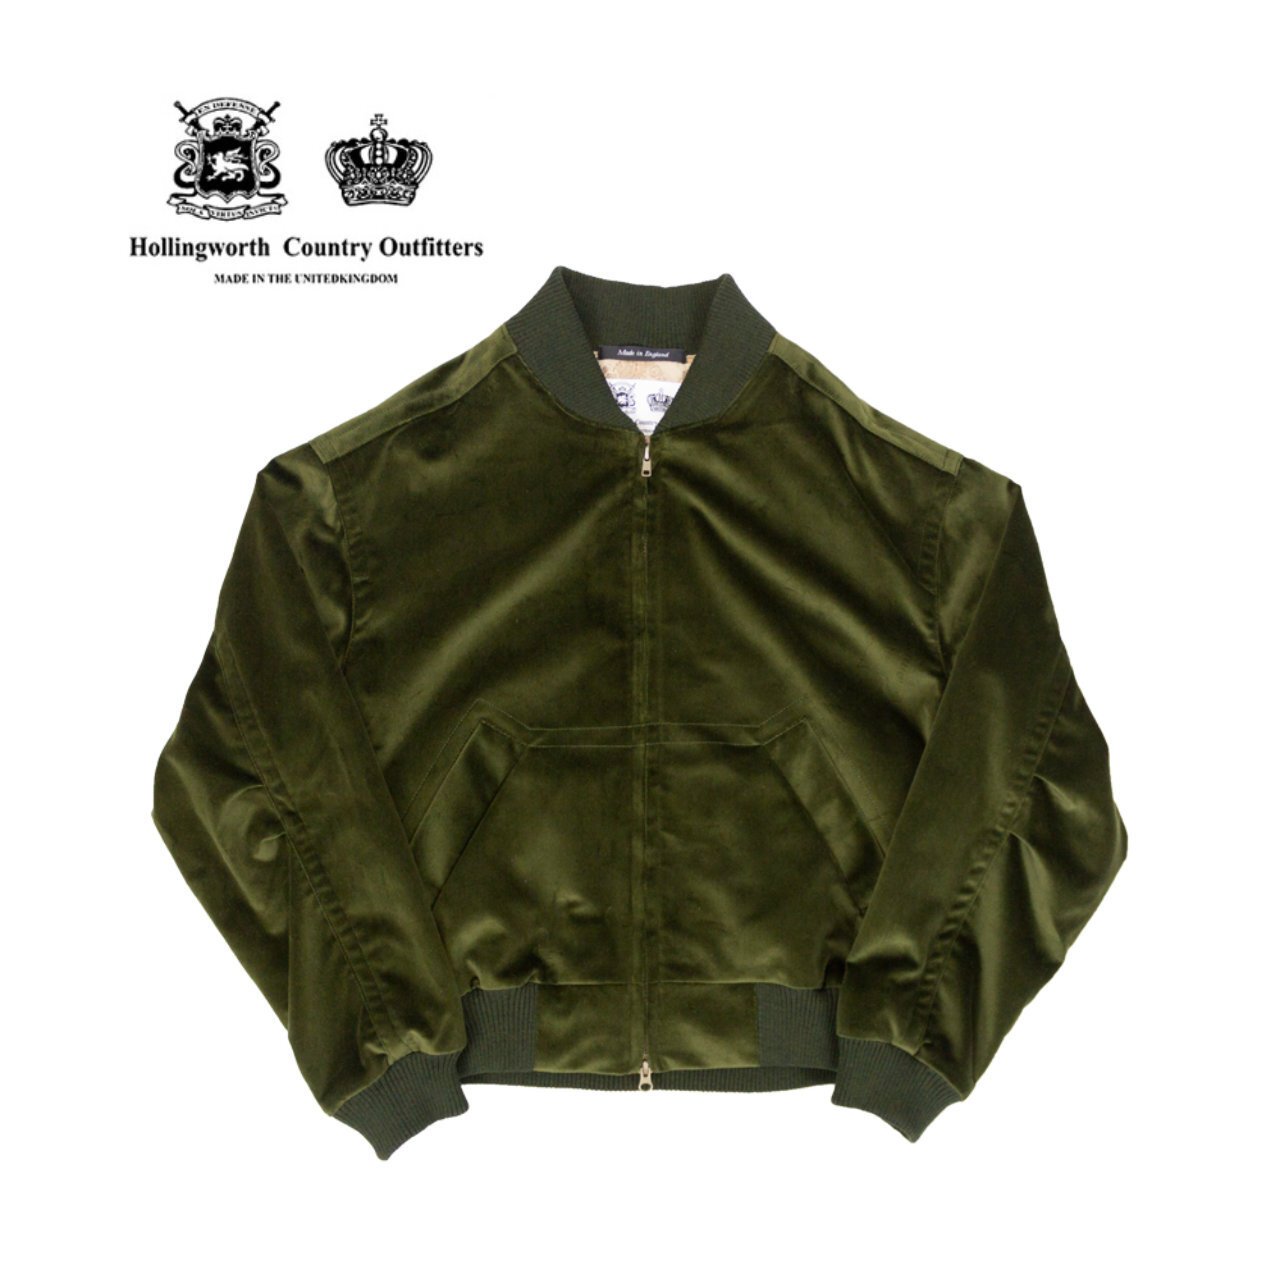 【Hollingworth Country Outfitters】 ベロア ボンバー ジャケット 〈Green〉